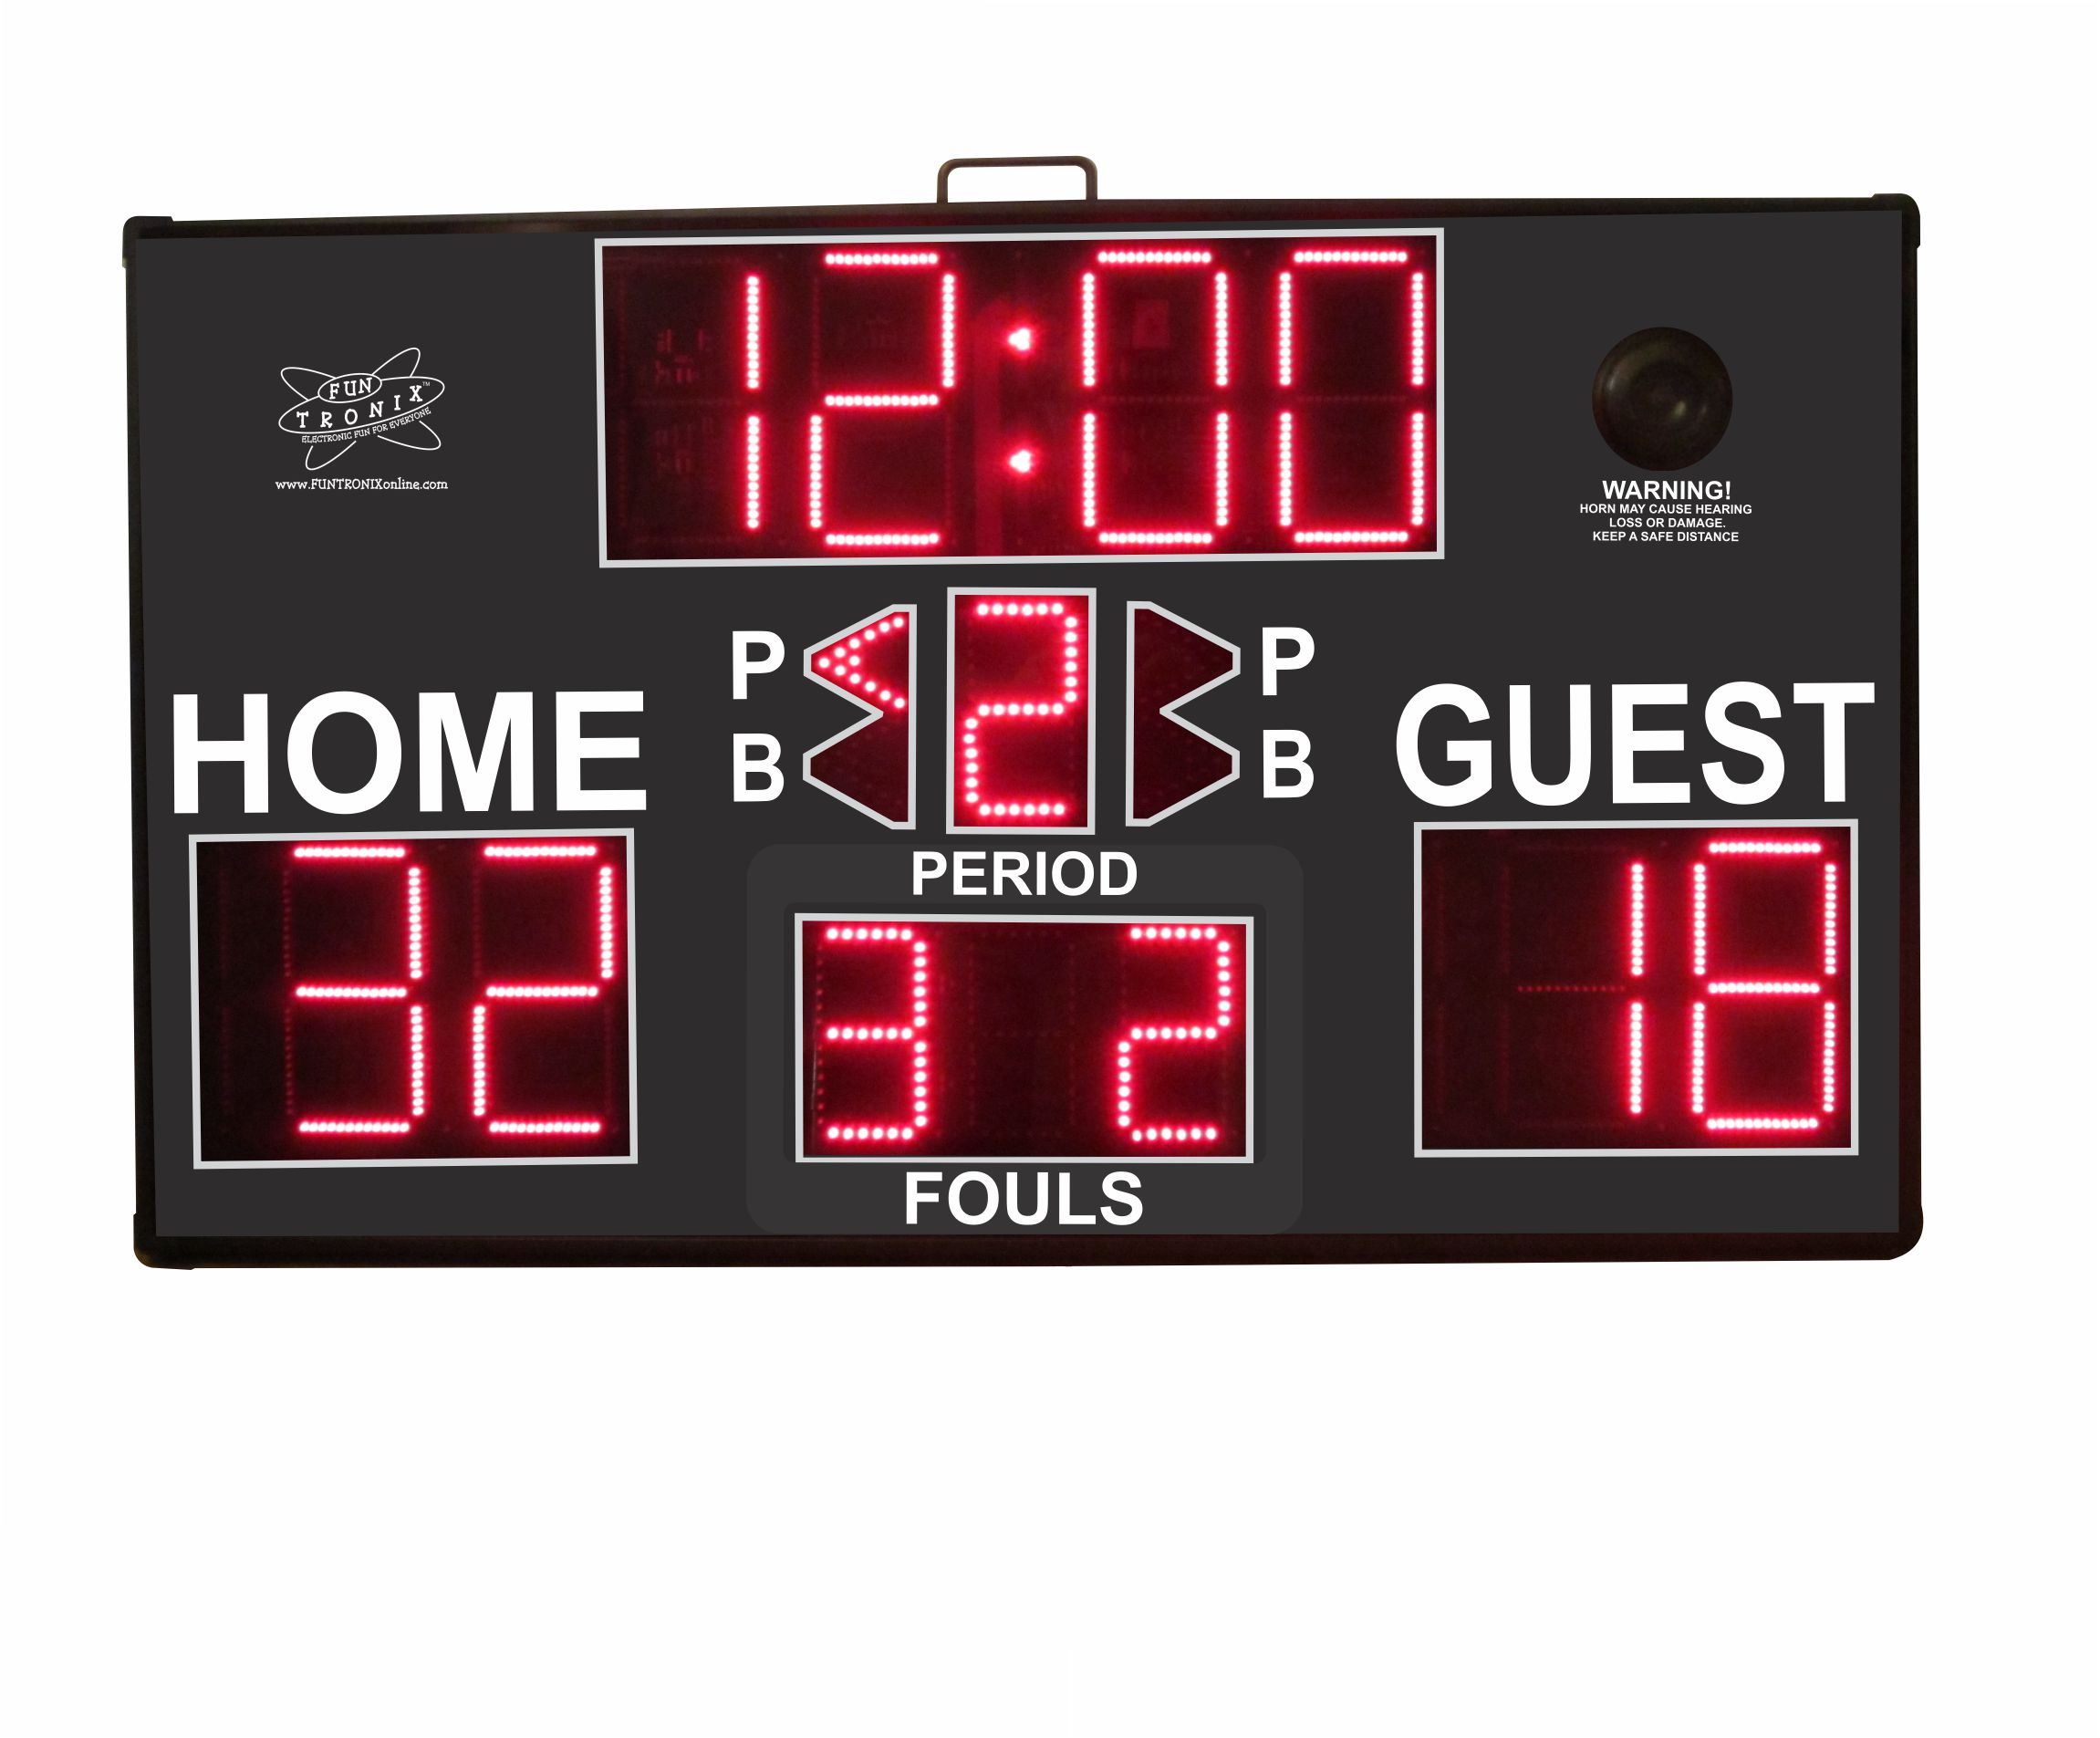 Multisport Portable Scoreboard with team fouls